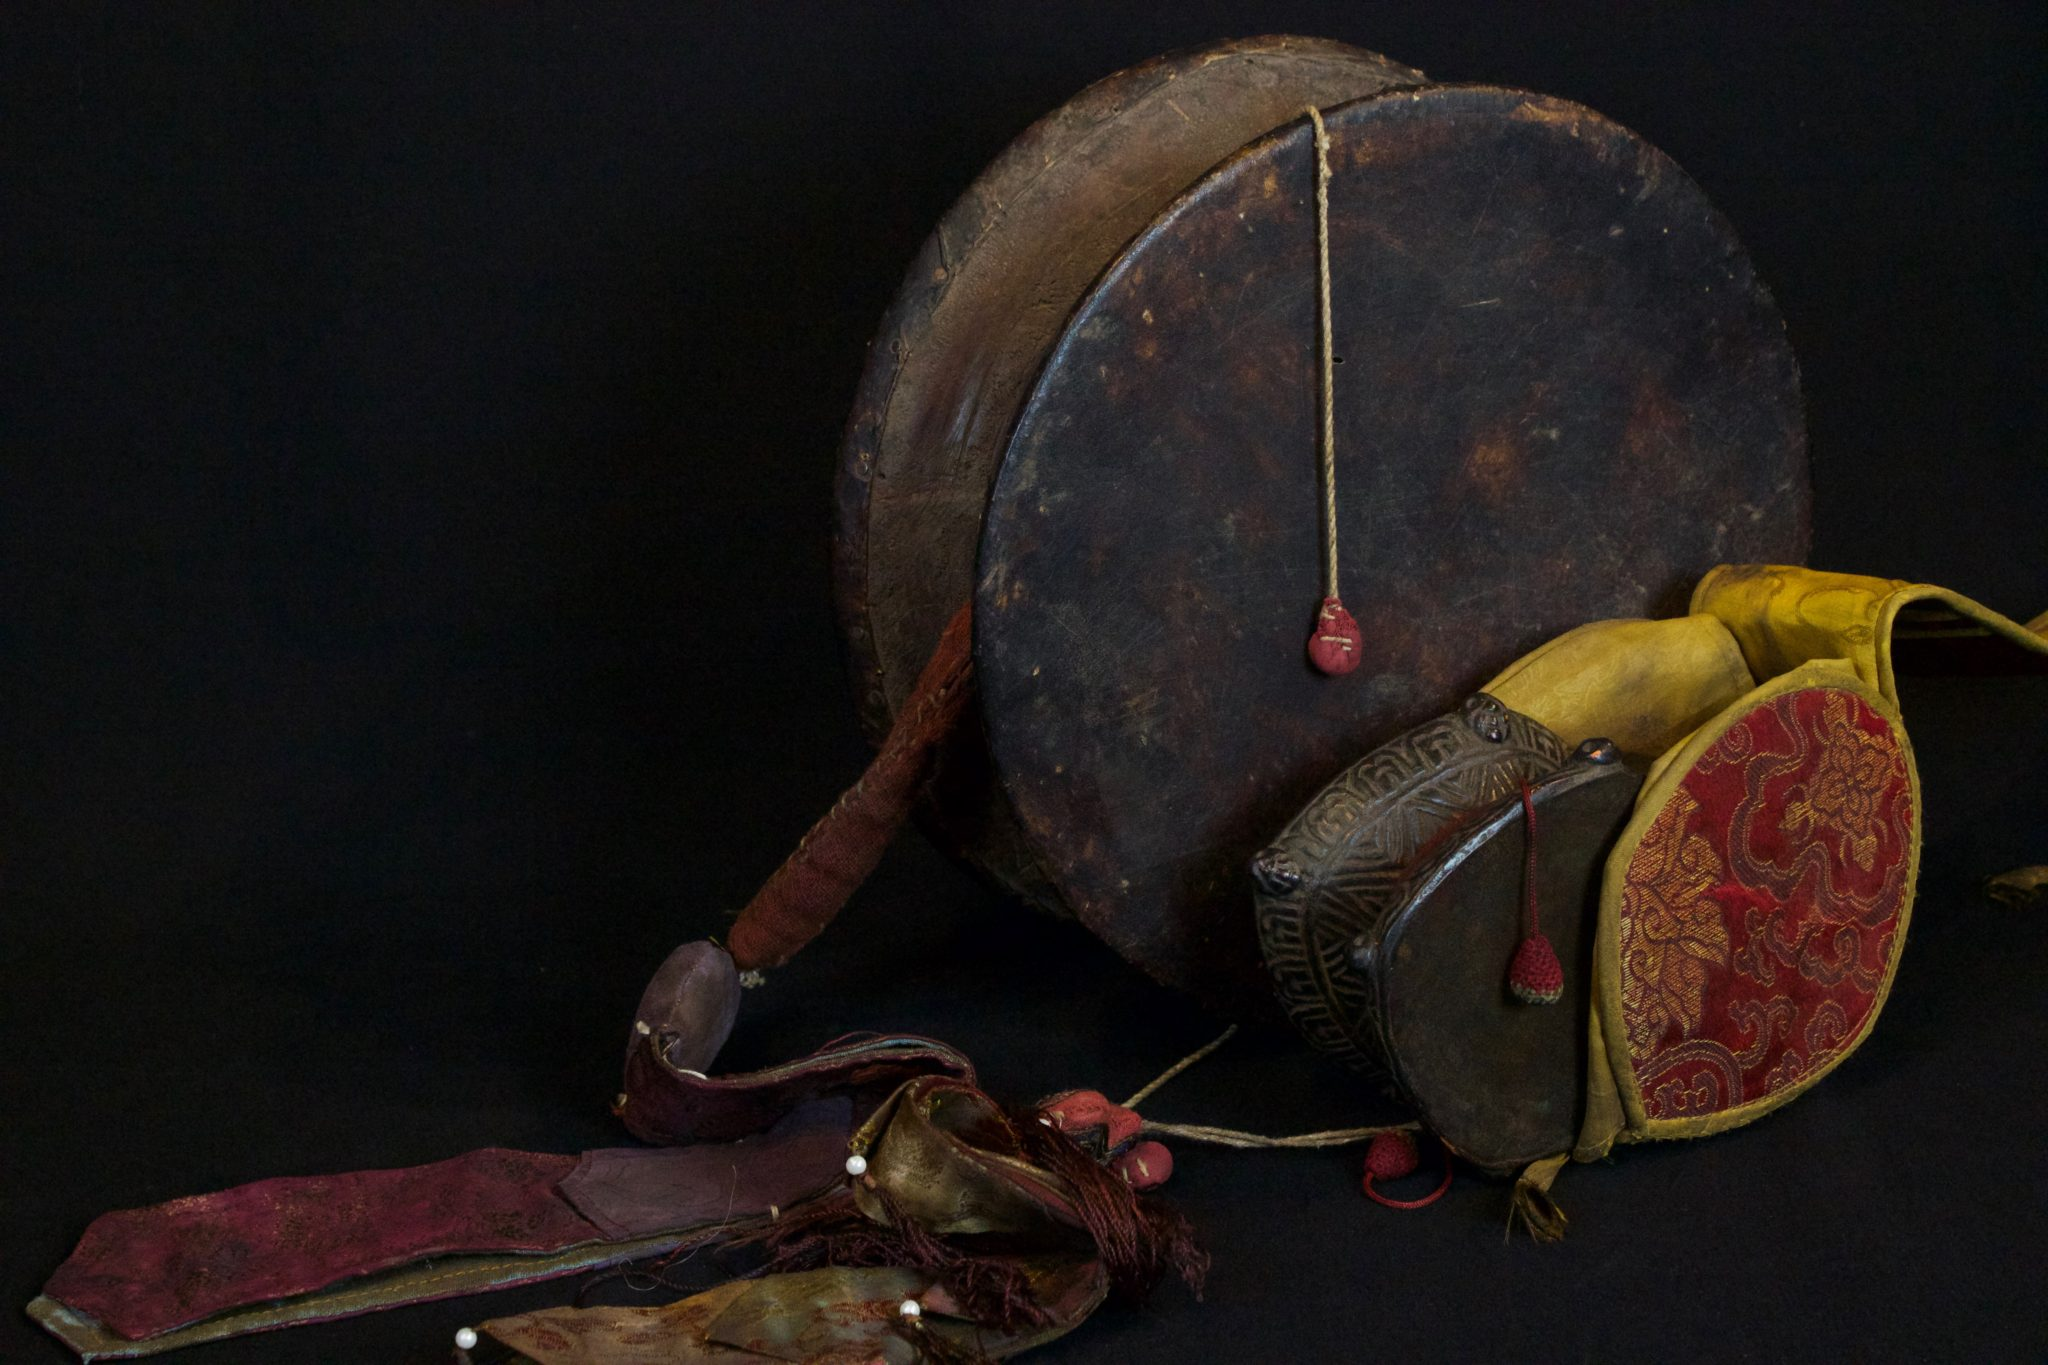 """Damaru with Chopin (2 sided drum with sash), late 19th and early 20th c, wood, hide, fabric This power drum, associated with Shiva, is used for tantric rituals and is played with a twisting motion so the two beaters - attached by cords, hit the drum heads simultaneously. It produces a spiritual sound by which the universe was created and is regulated. The Chopin is typically embroidered with the colors of tantric elements and waves as the drum is played. large - 32"""" x 11"""" x 4 """", $700.; small with case"""